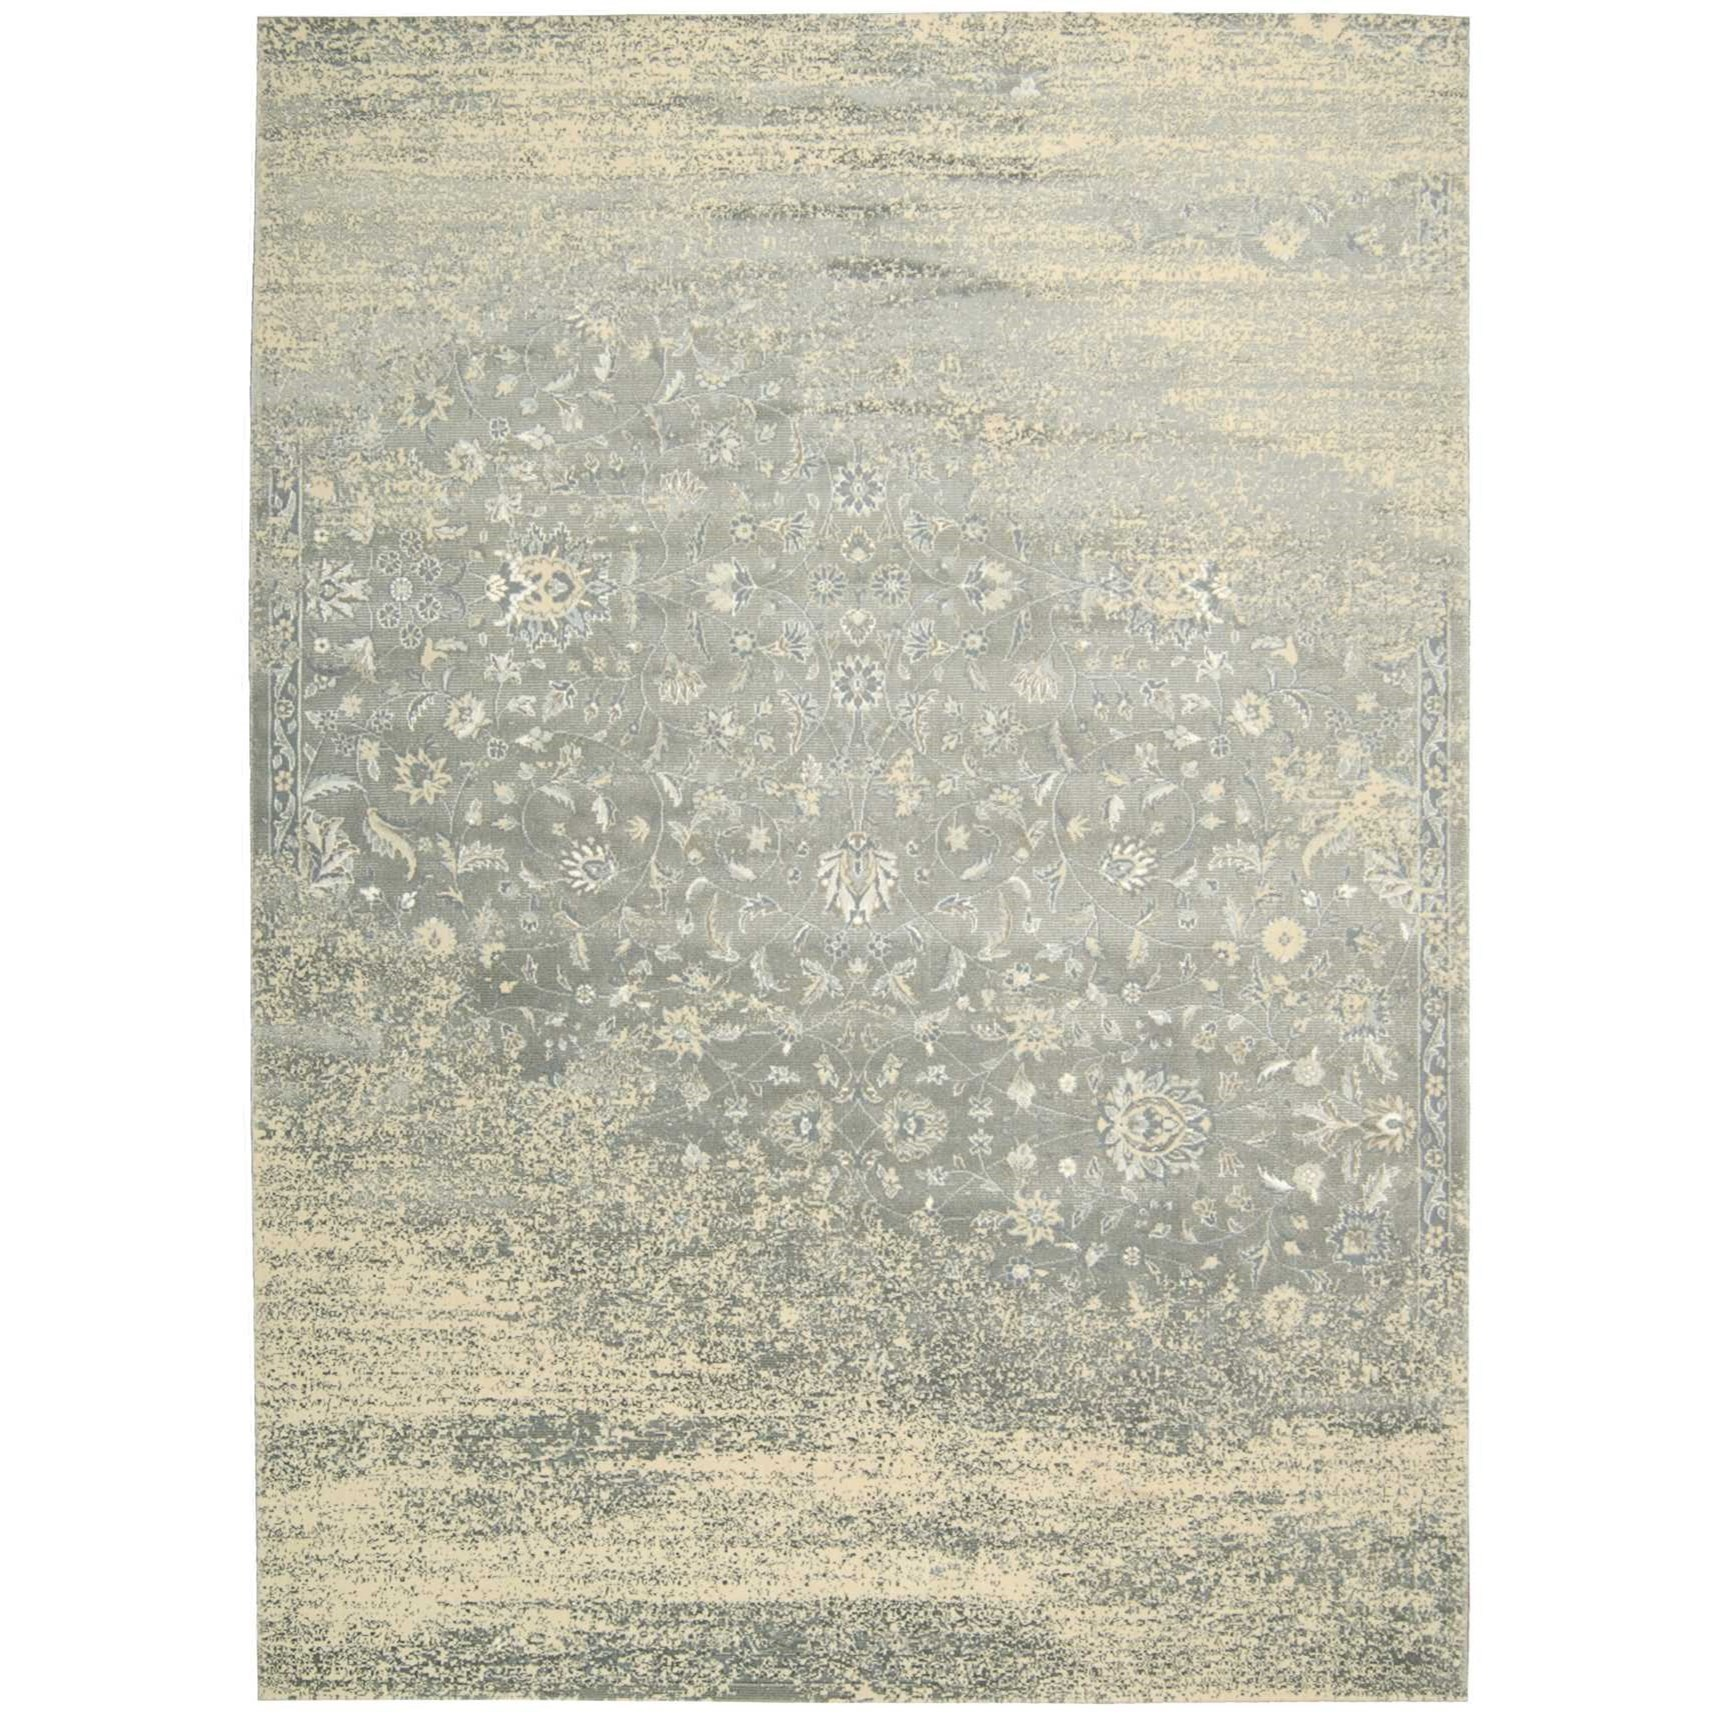 """Luminance 7'6"""" x 10'6"""" Silver Rectangle Rug by Nourison at Home Collections Furniture"""